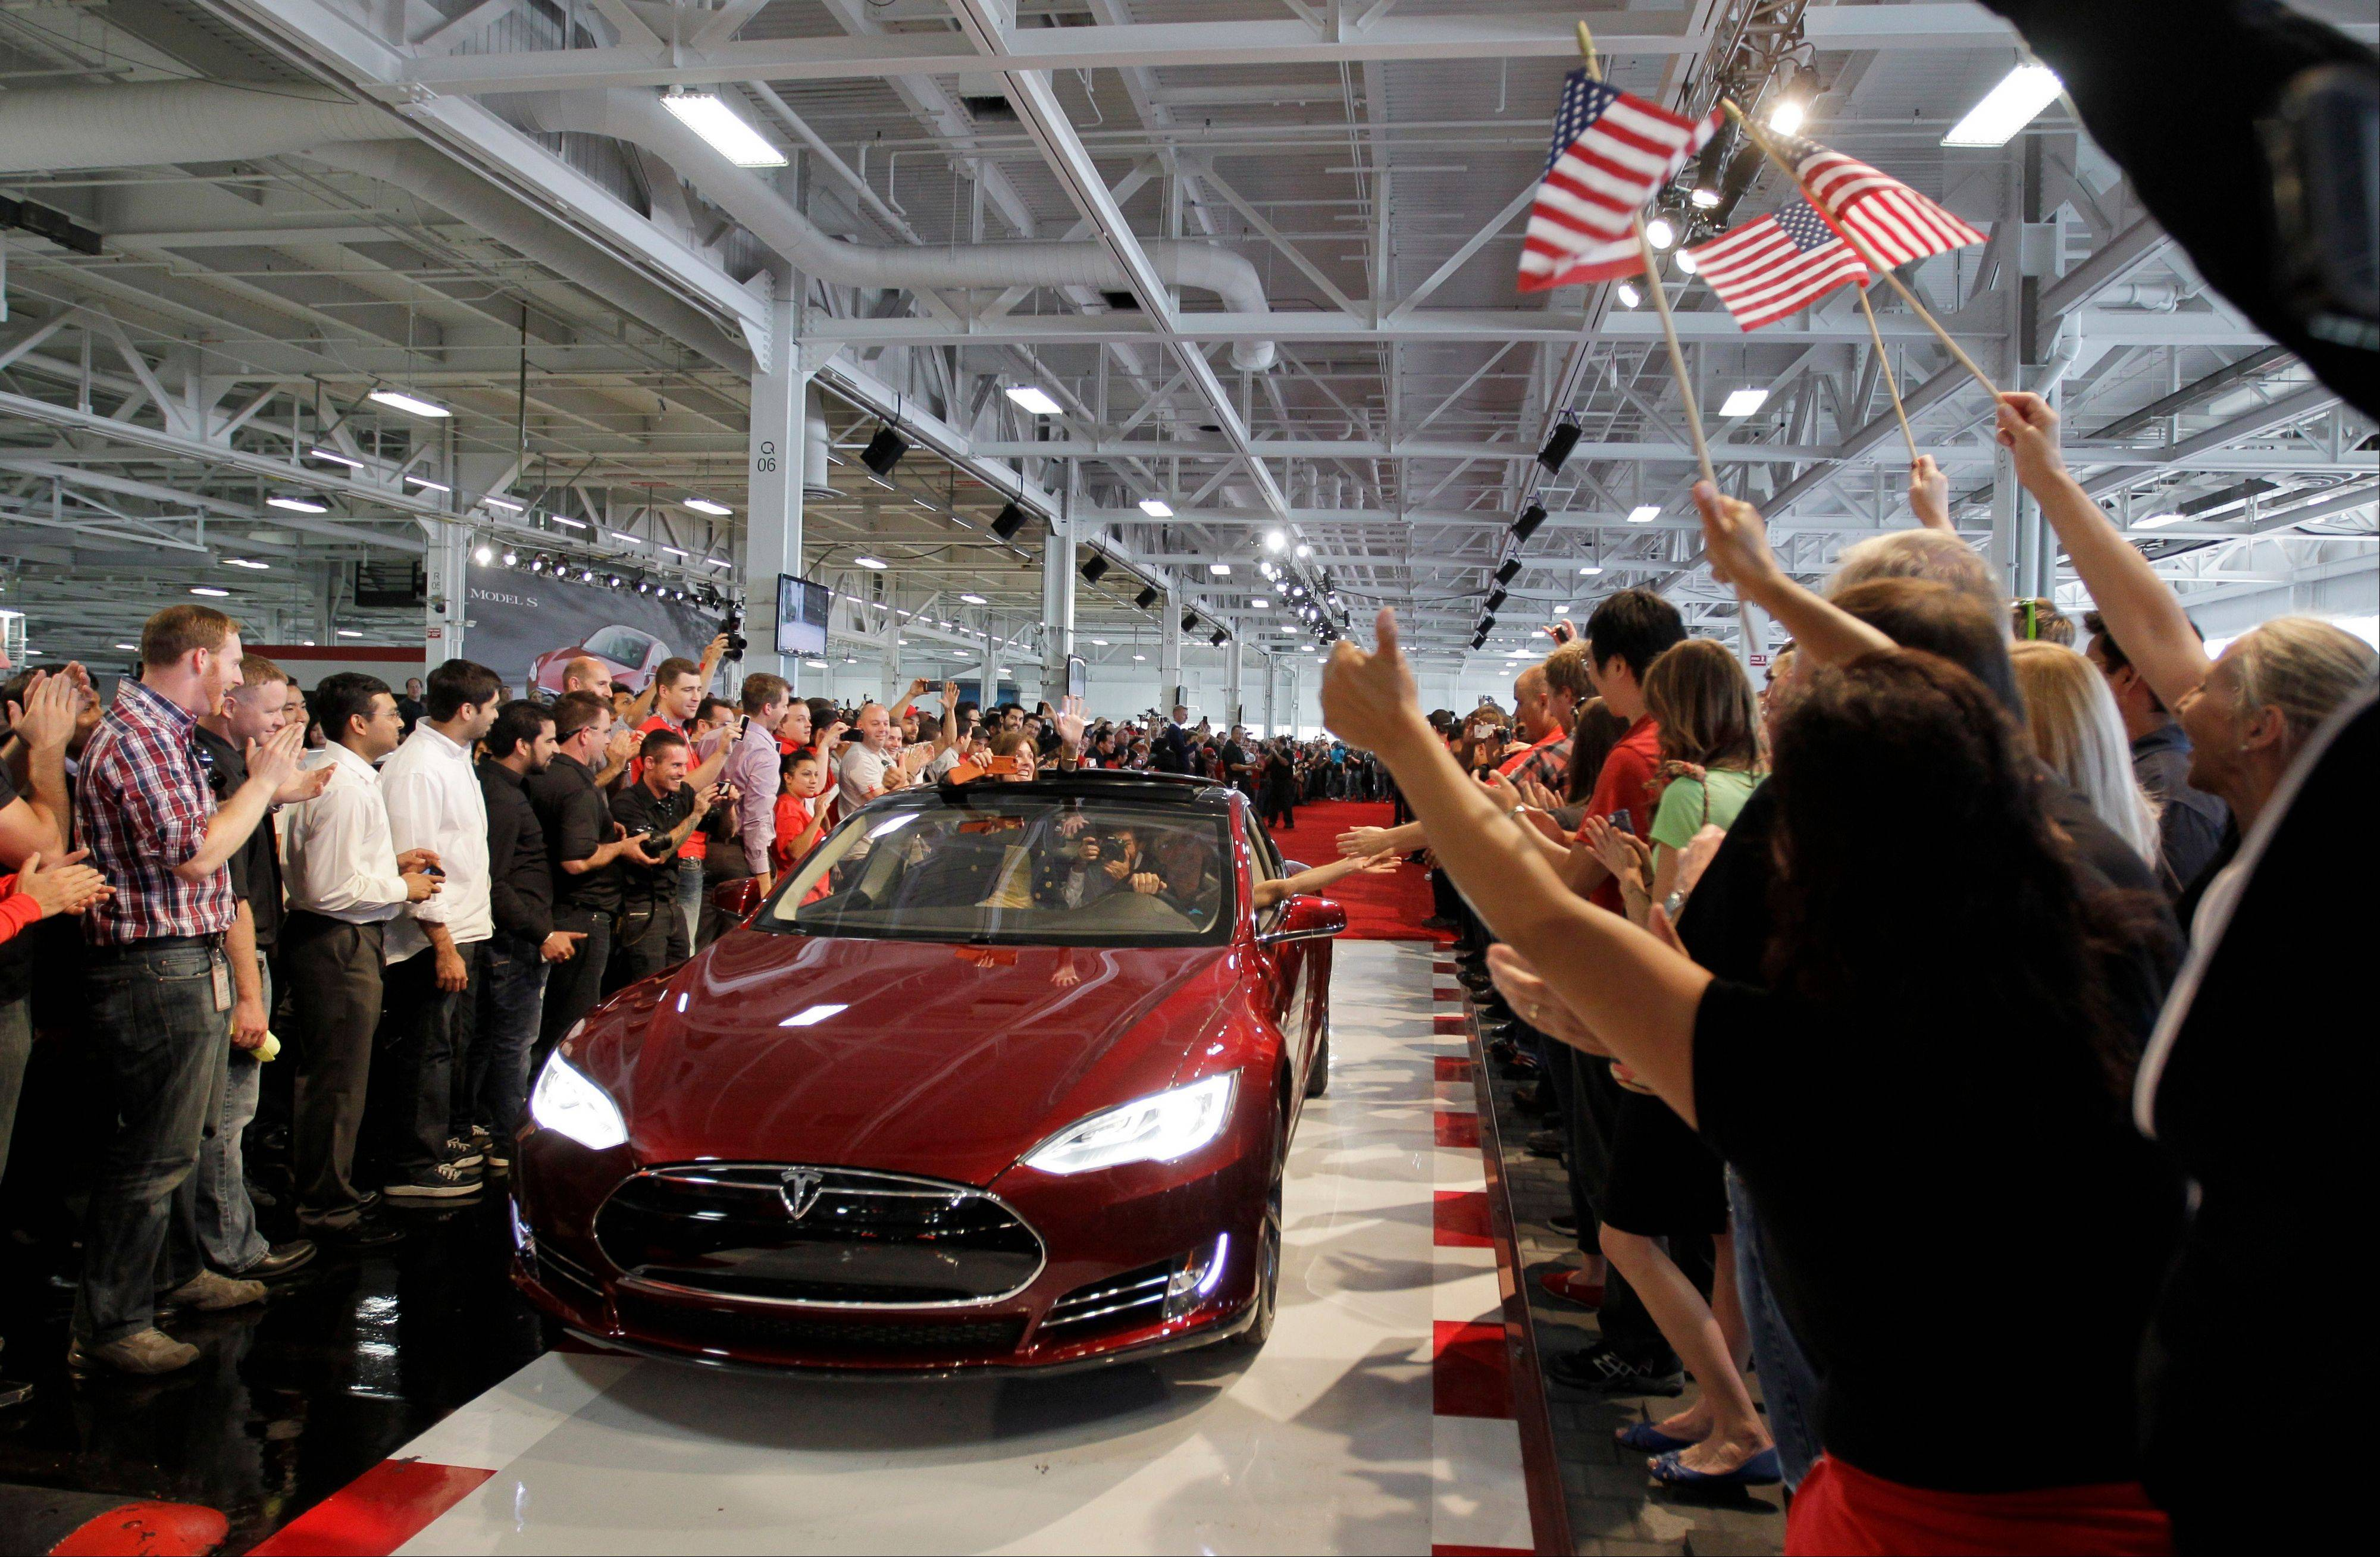 Tesla workers cheer on one the first Tesla Model S cars sold during a rally at the Tesla factory in Fremont, Calif., last June 22.